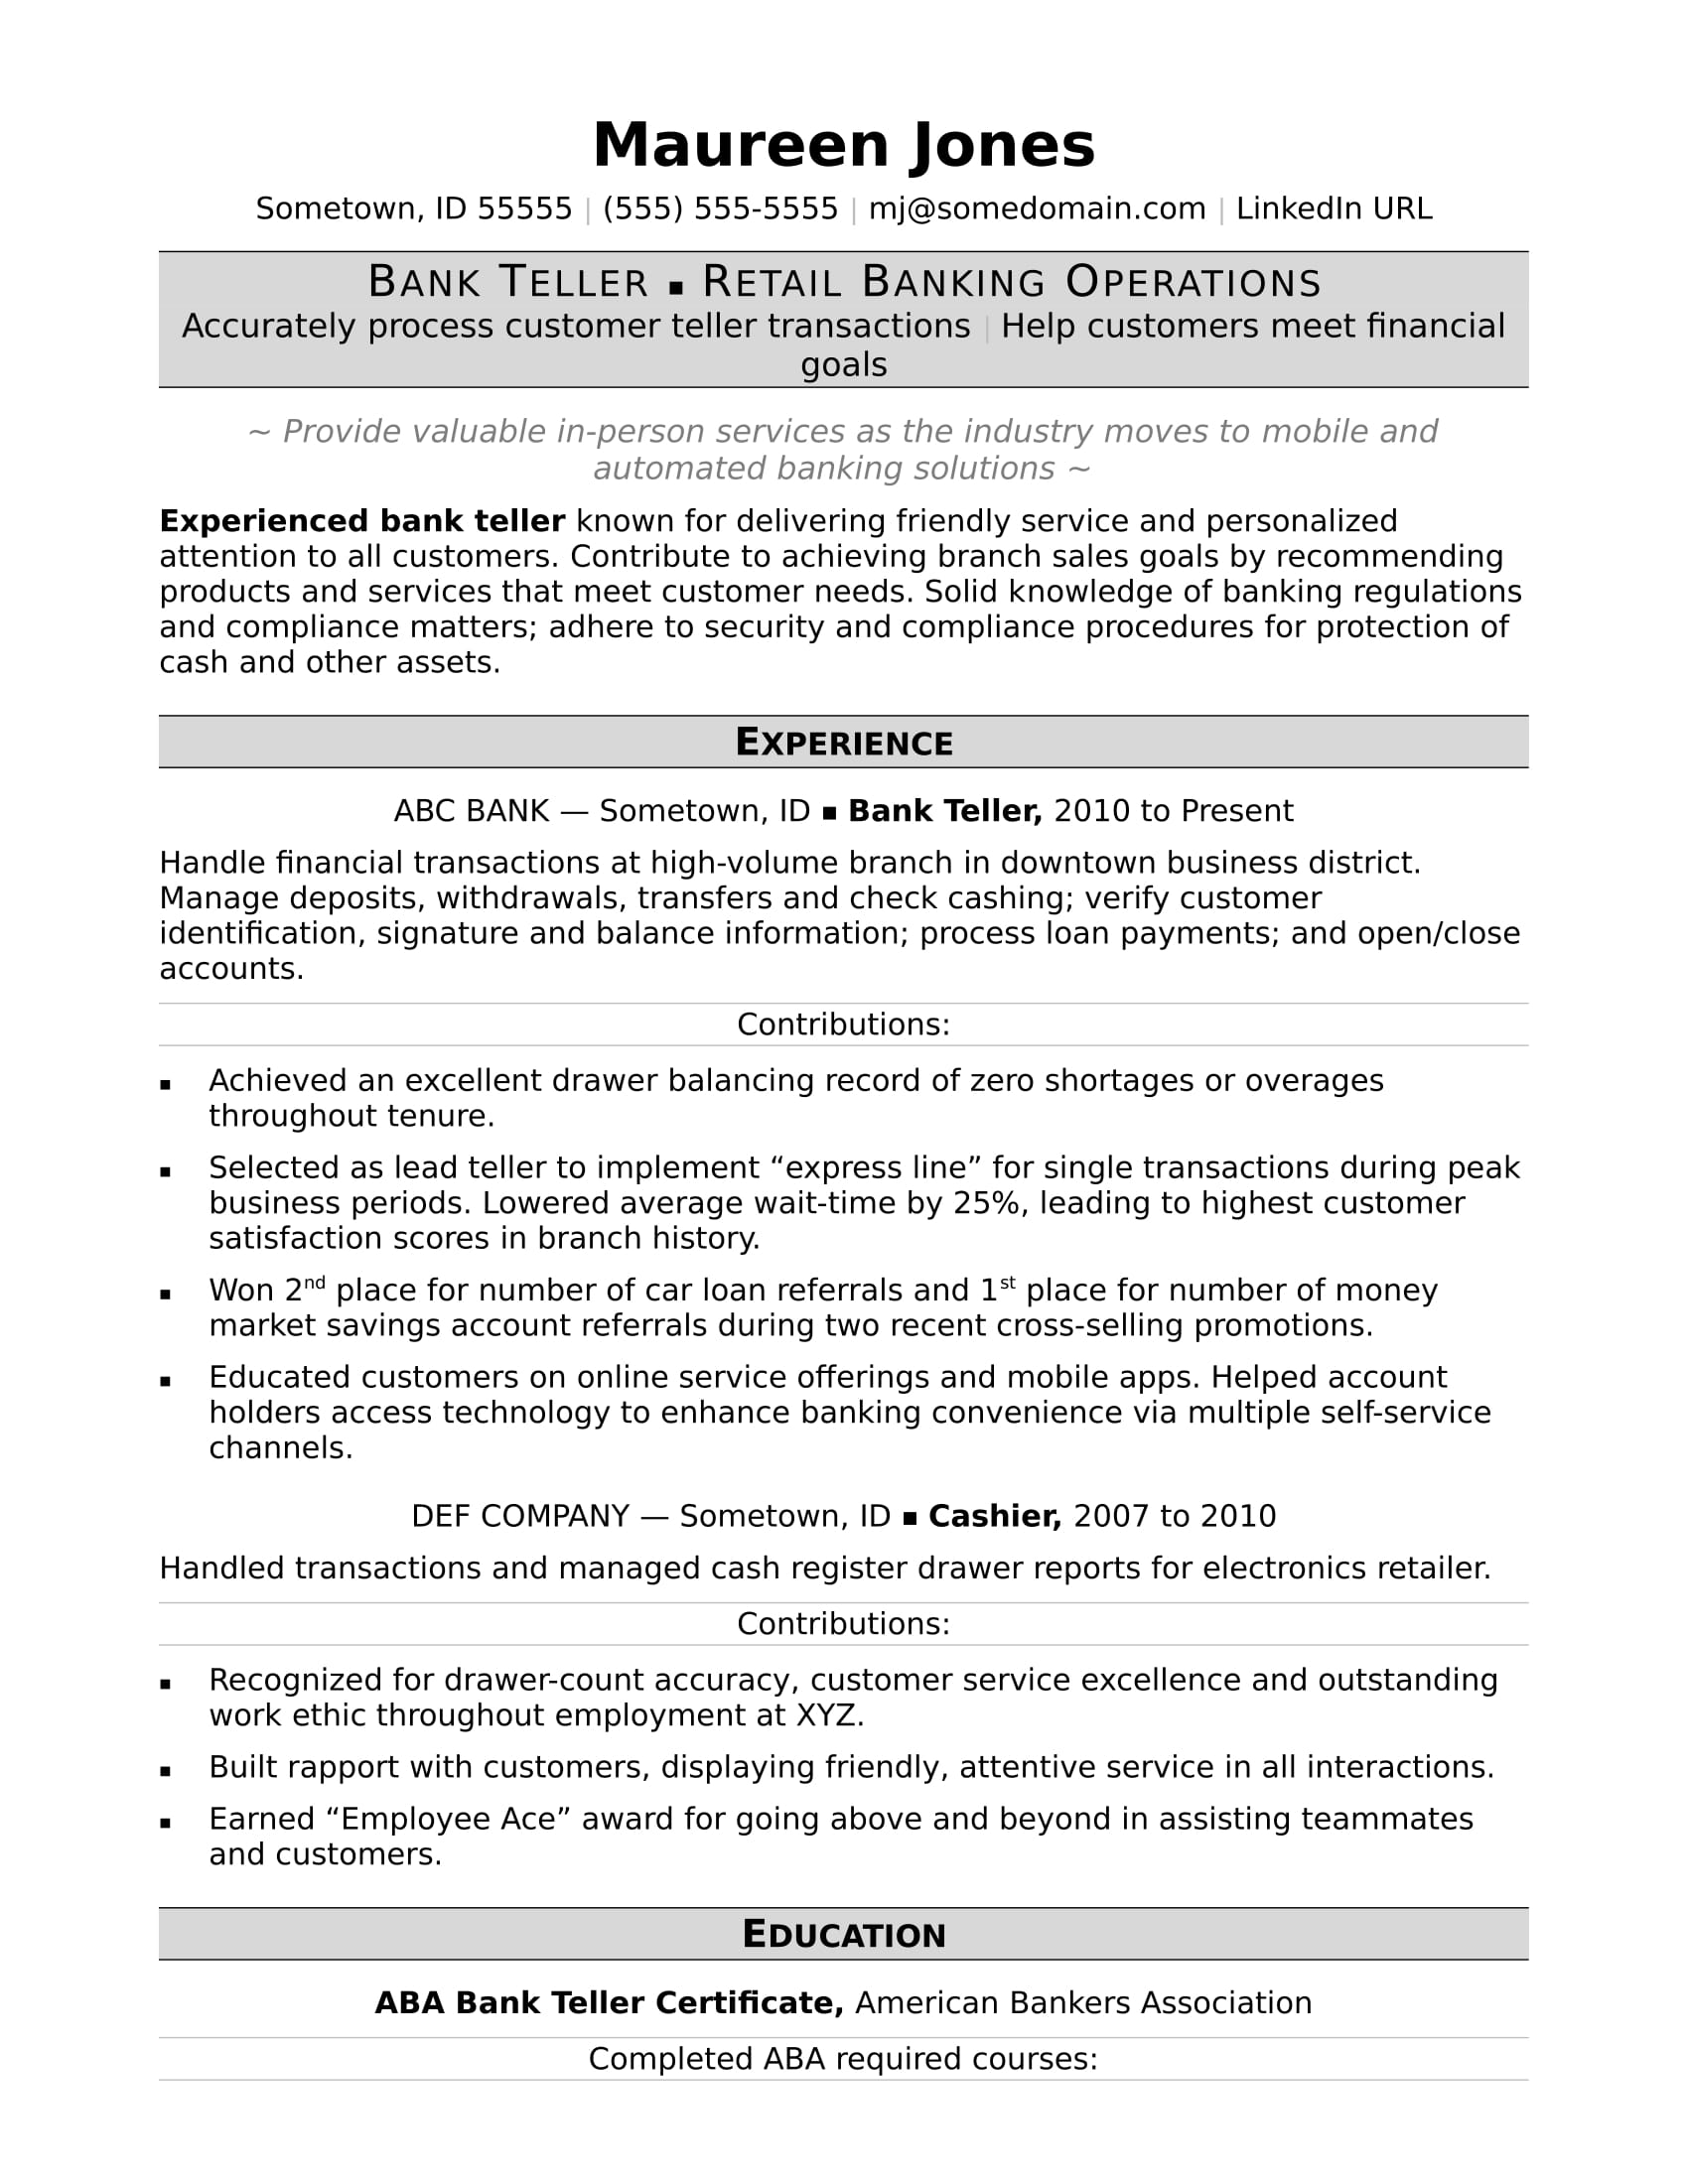 Bank Teller Resume Sample  Bank Teller Resume Sample